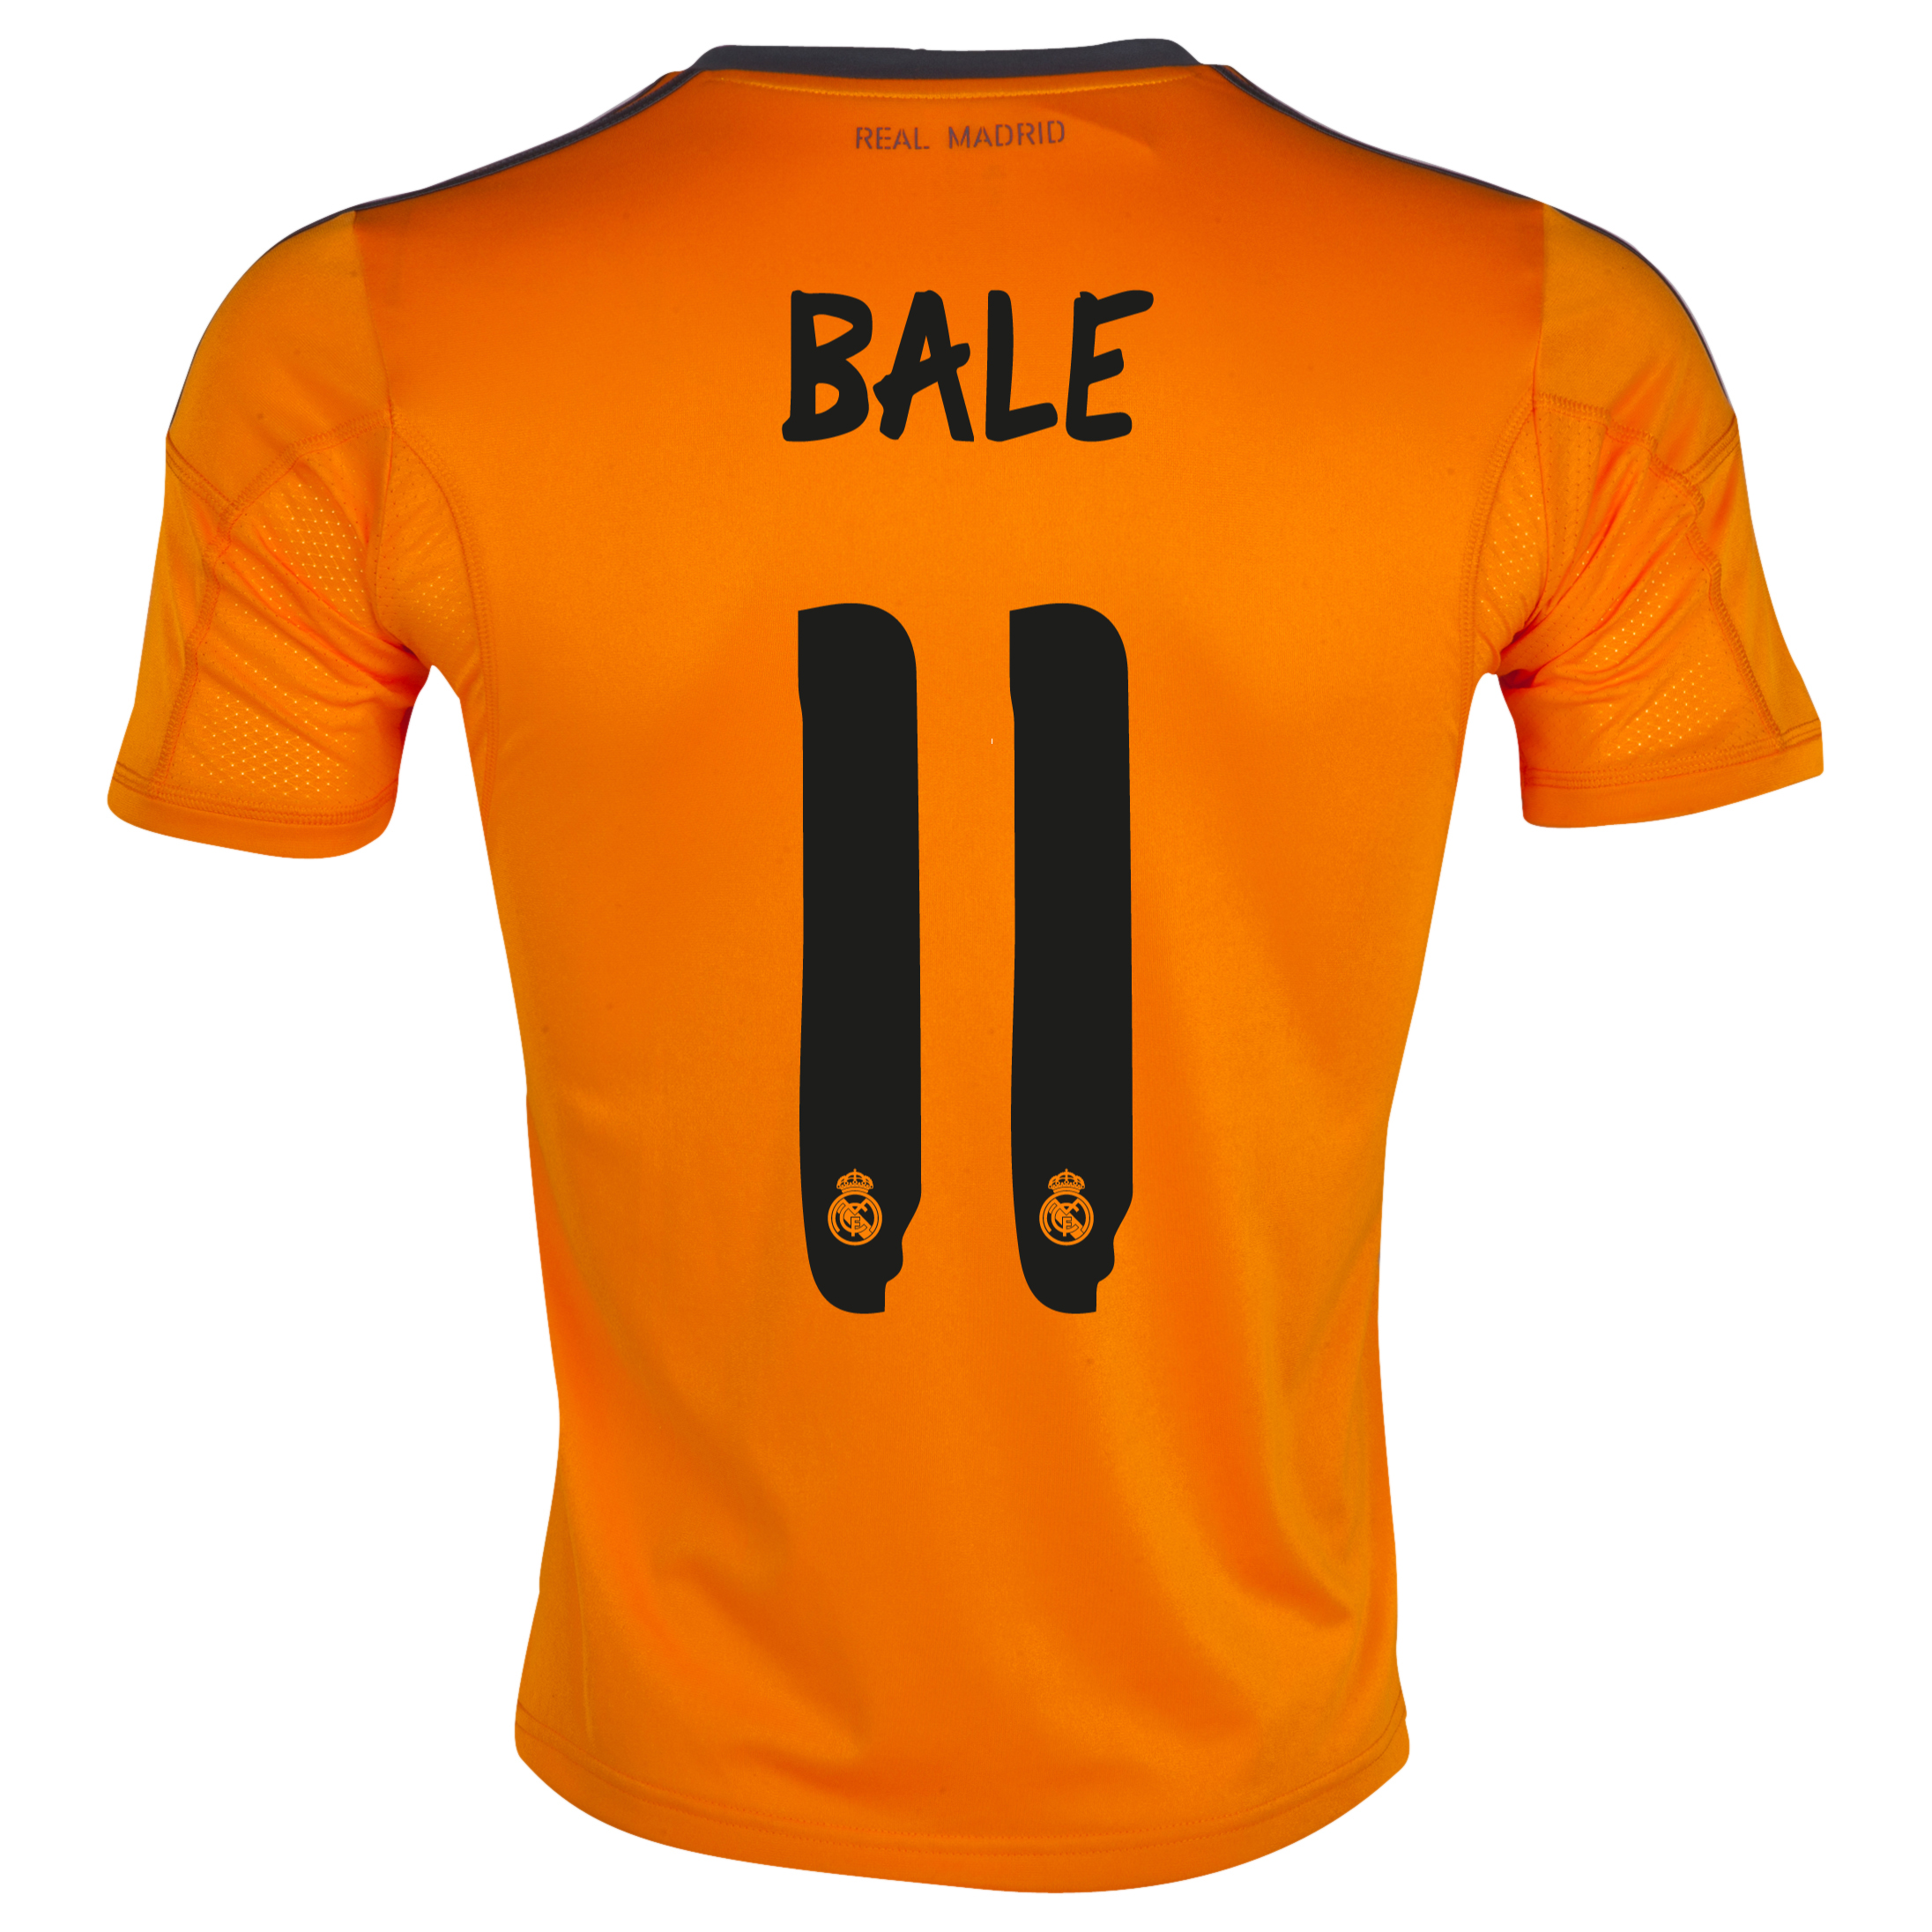 Real Madrid Third Shirt 2013/14 - Kids with Bale 11 printing